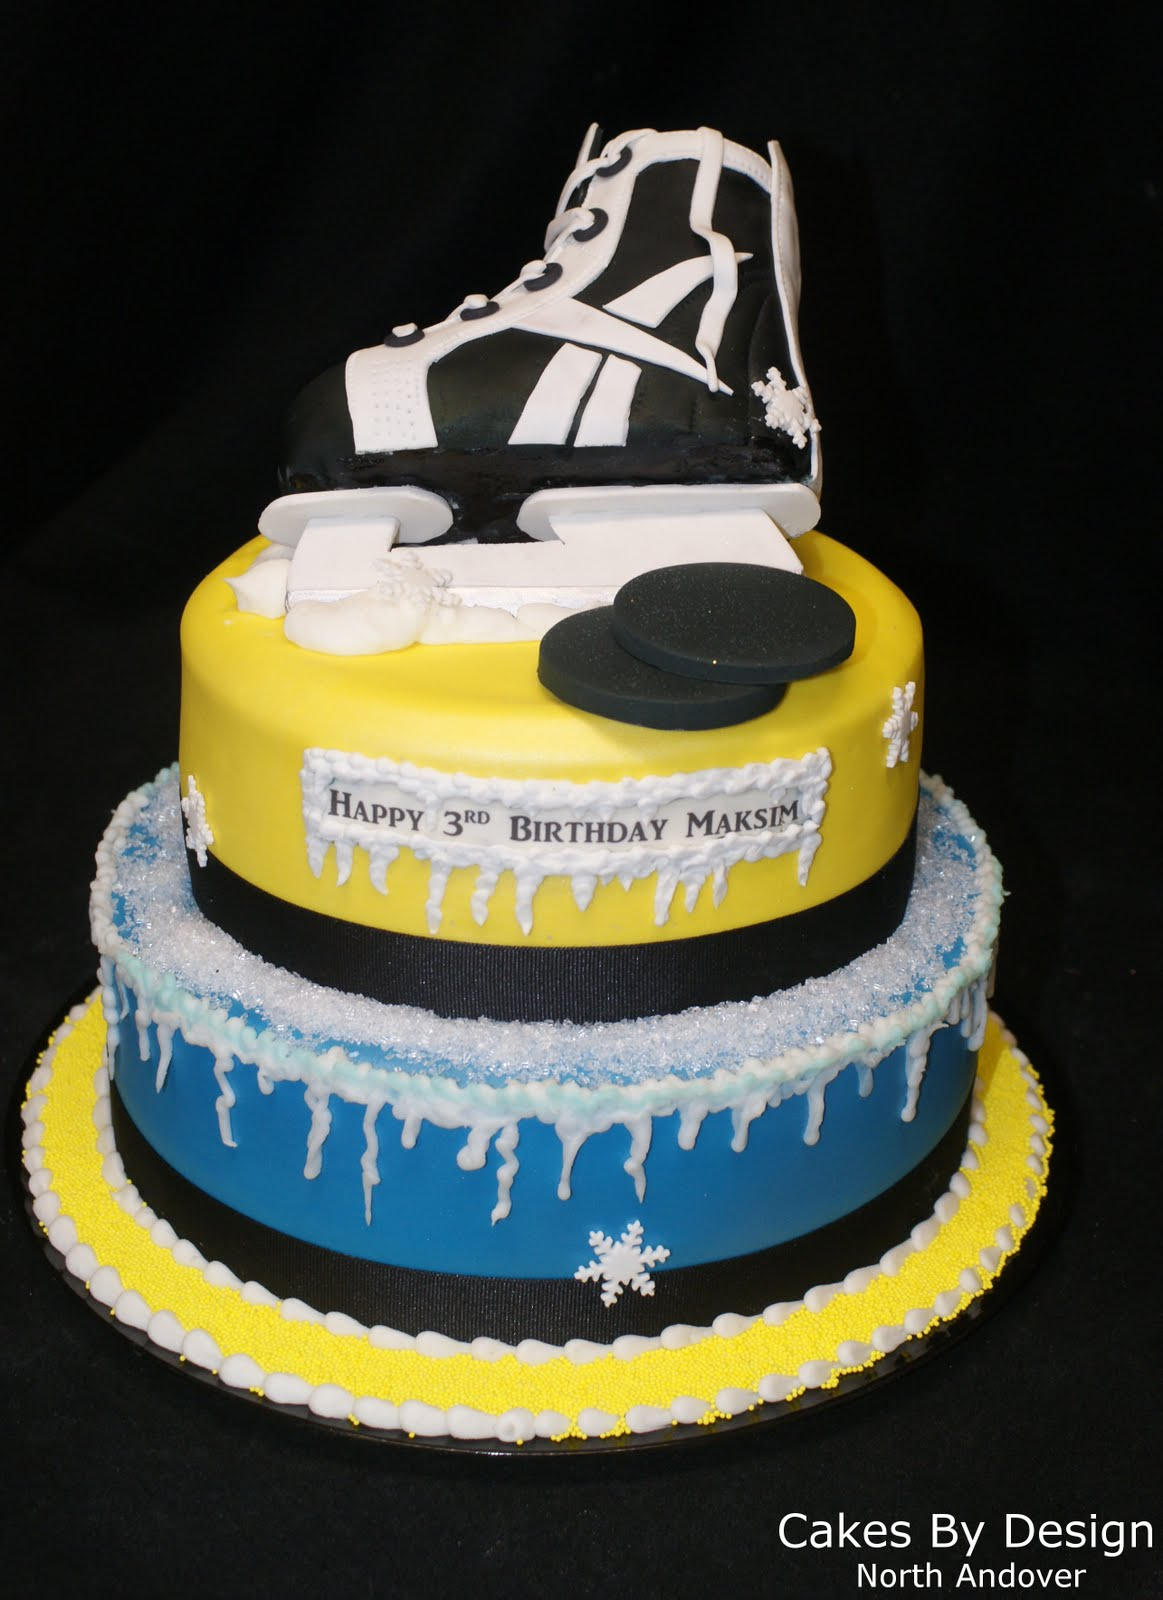 Cakes By Design Edible Art Blog Winter Themed Cakes